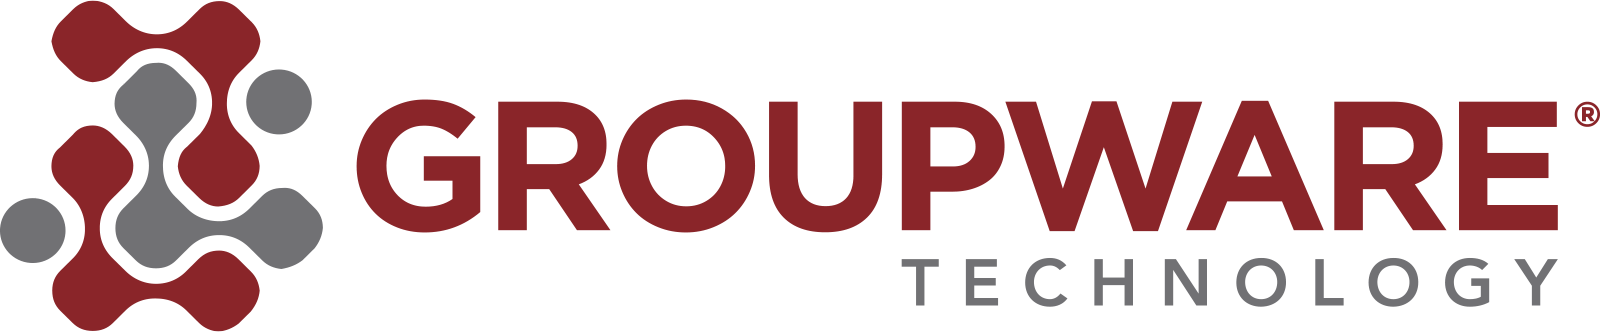 Groupware Technology Logo